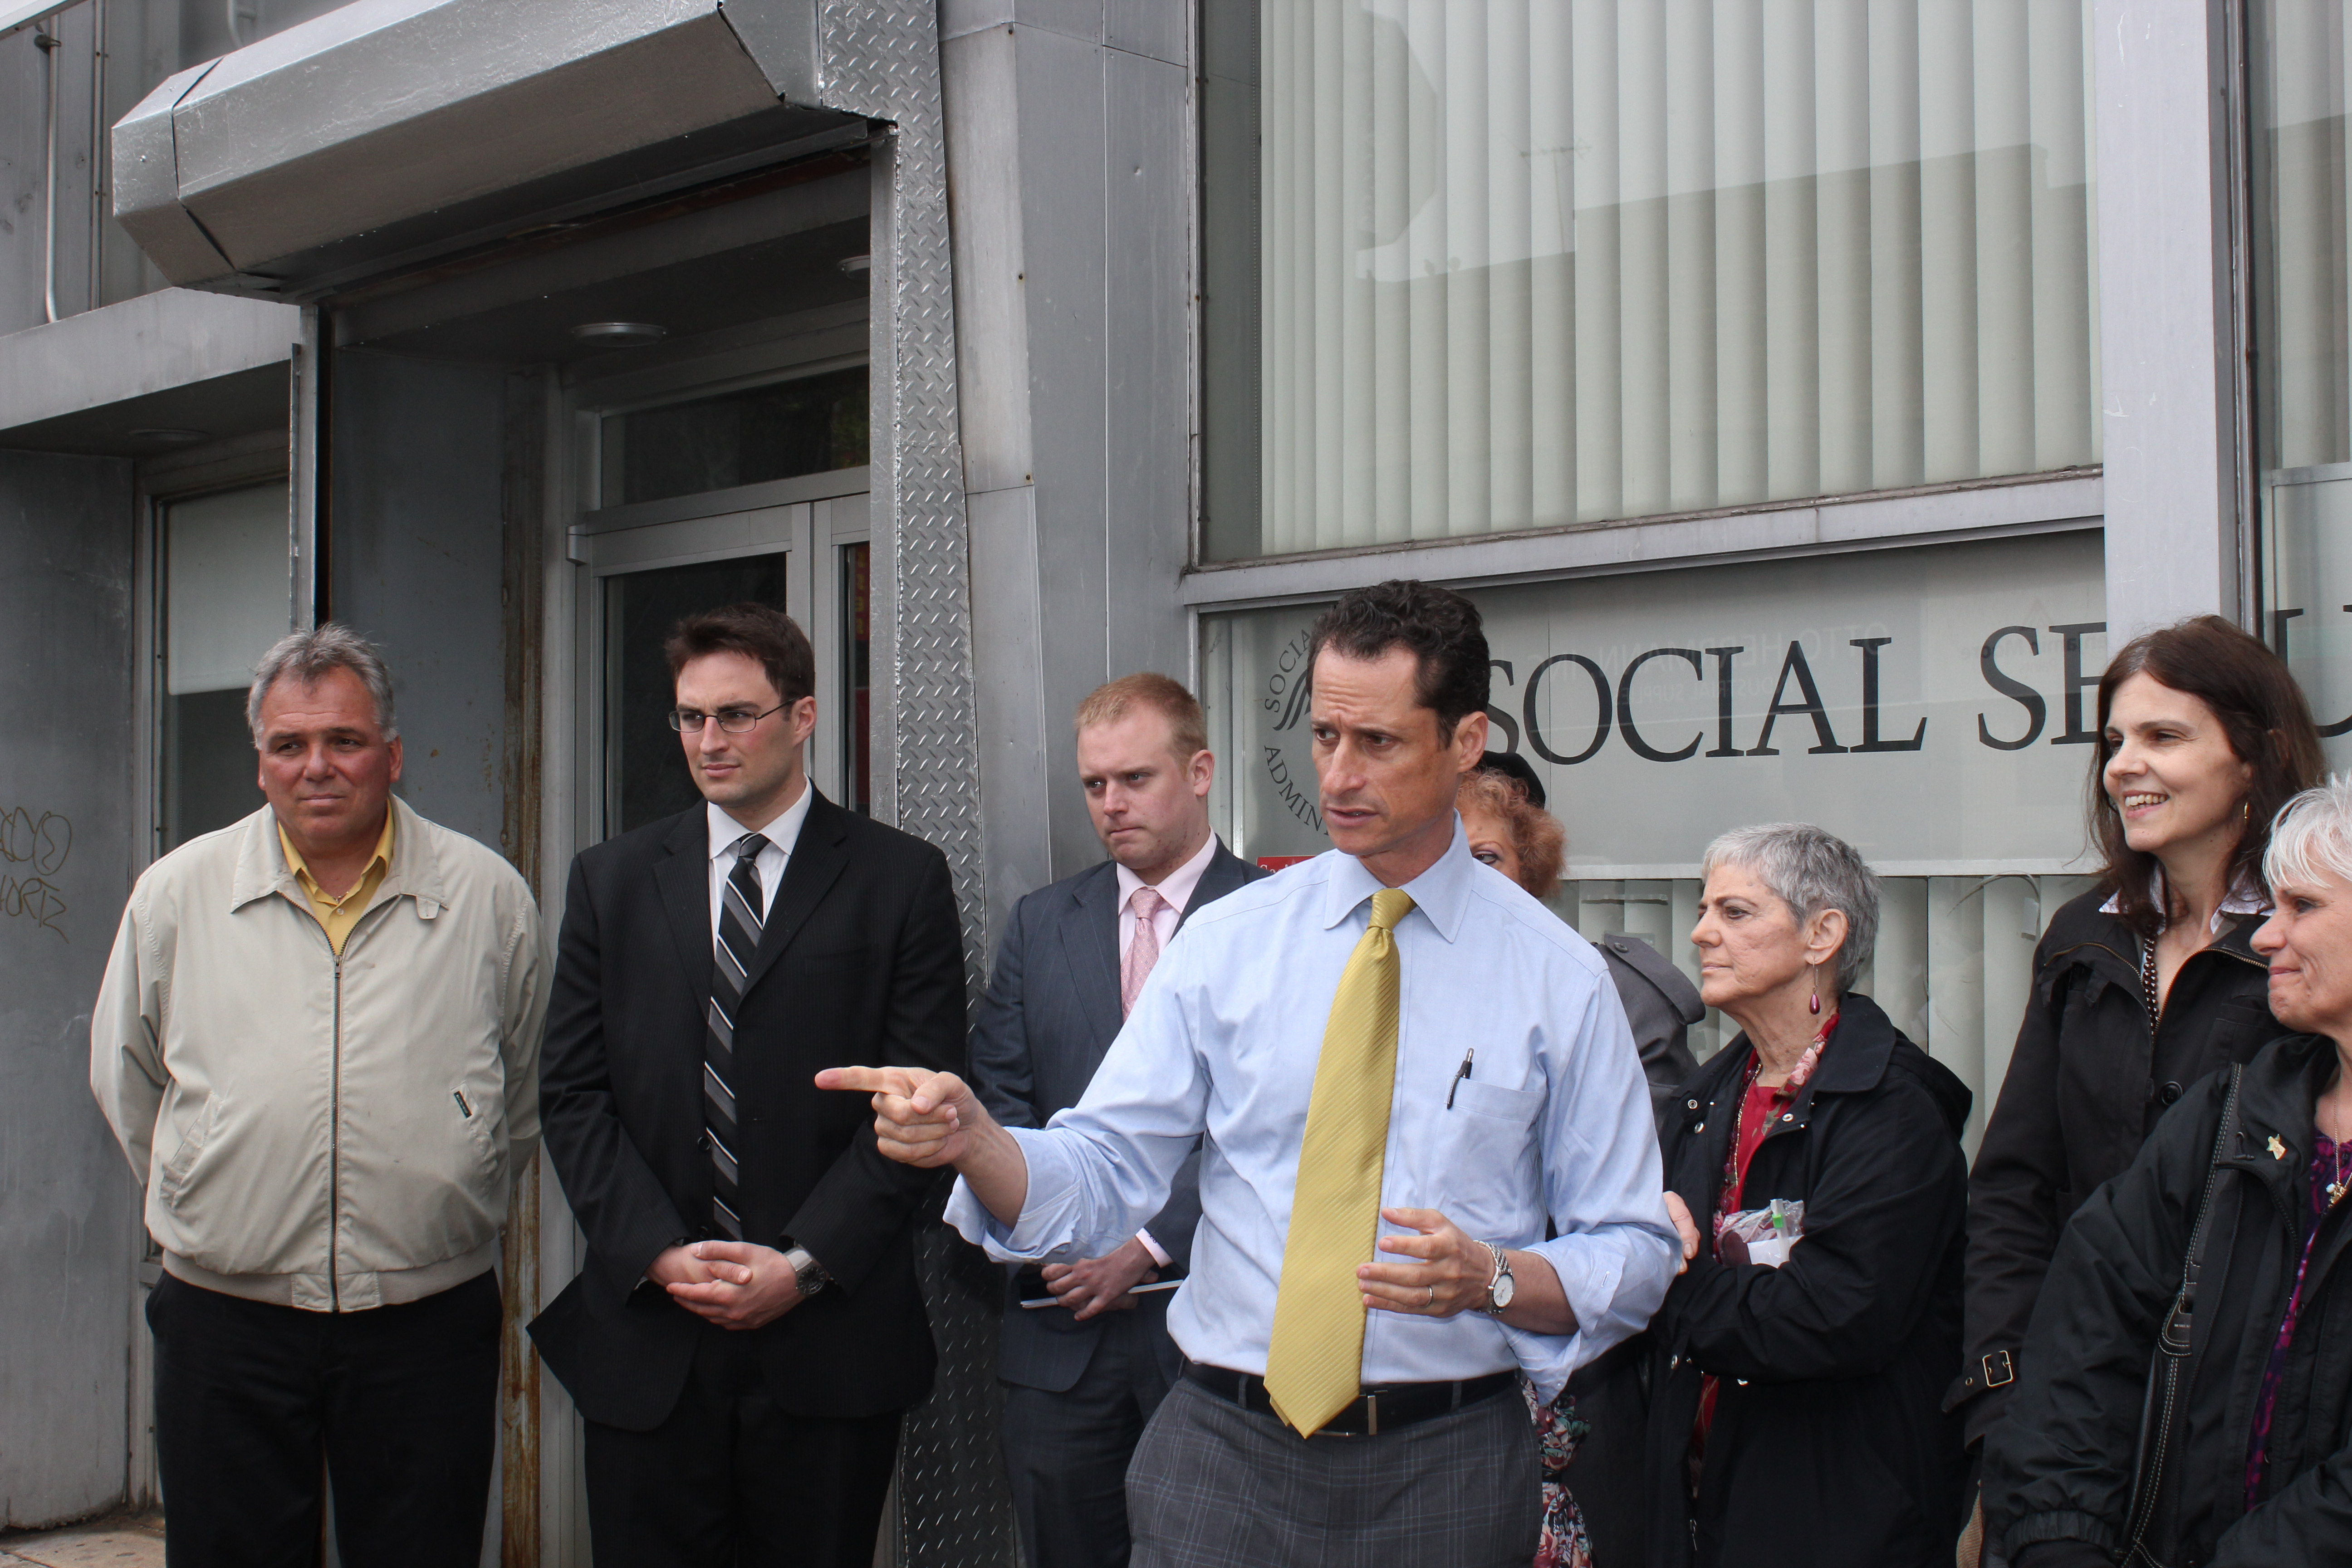 Glendales Social Security fice Proposed to Close